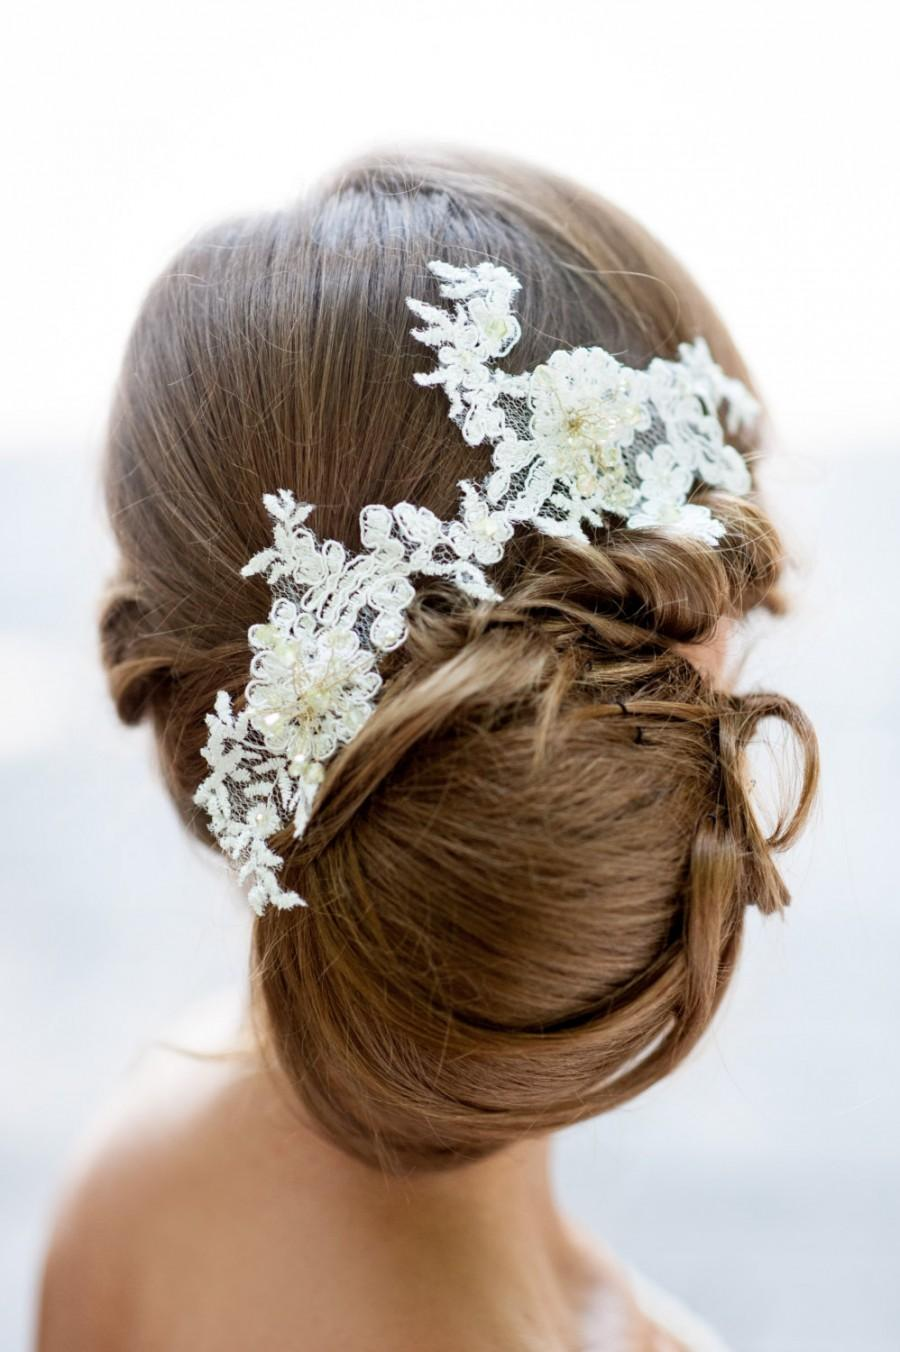 Bridal Lace Hair Accessory Handmade Bridal Lace Hair Piece Flower